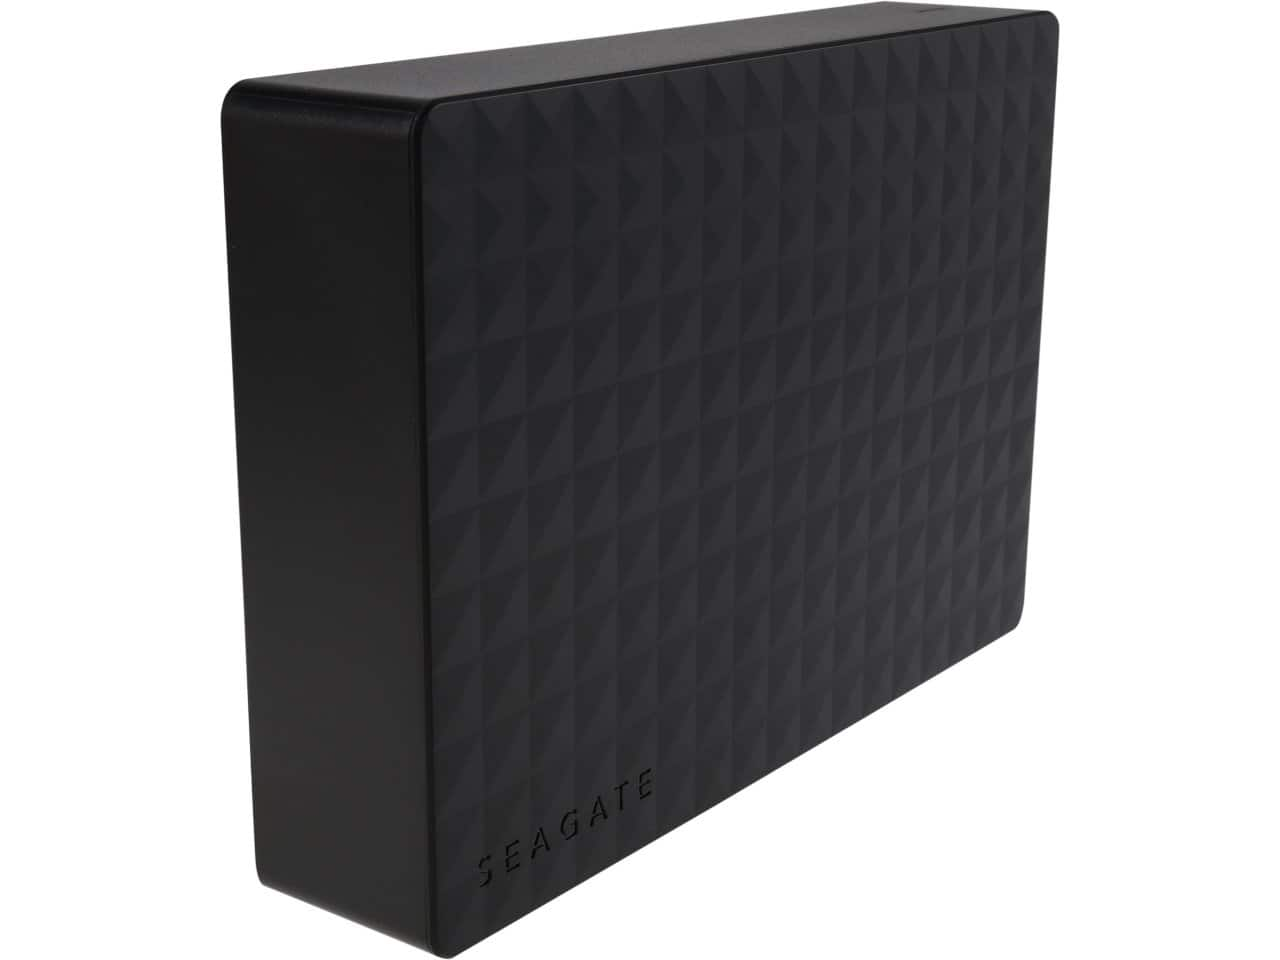 "5TB Seagate Expansion USB 3.0 Desktop External Hard Drive for $109.99 AC, 5TB Toshiba X300 3.5"" 7200 RPM SATA III Internal Hard Drive Retail Kit for $144.99 AC & More @ Newegg.com"